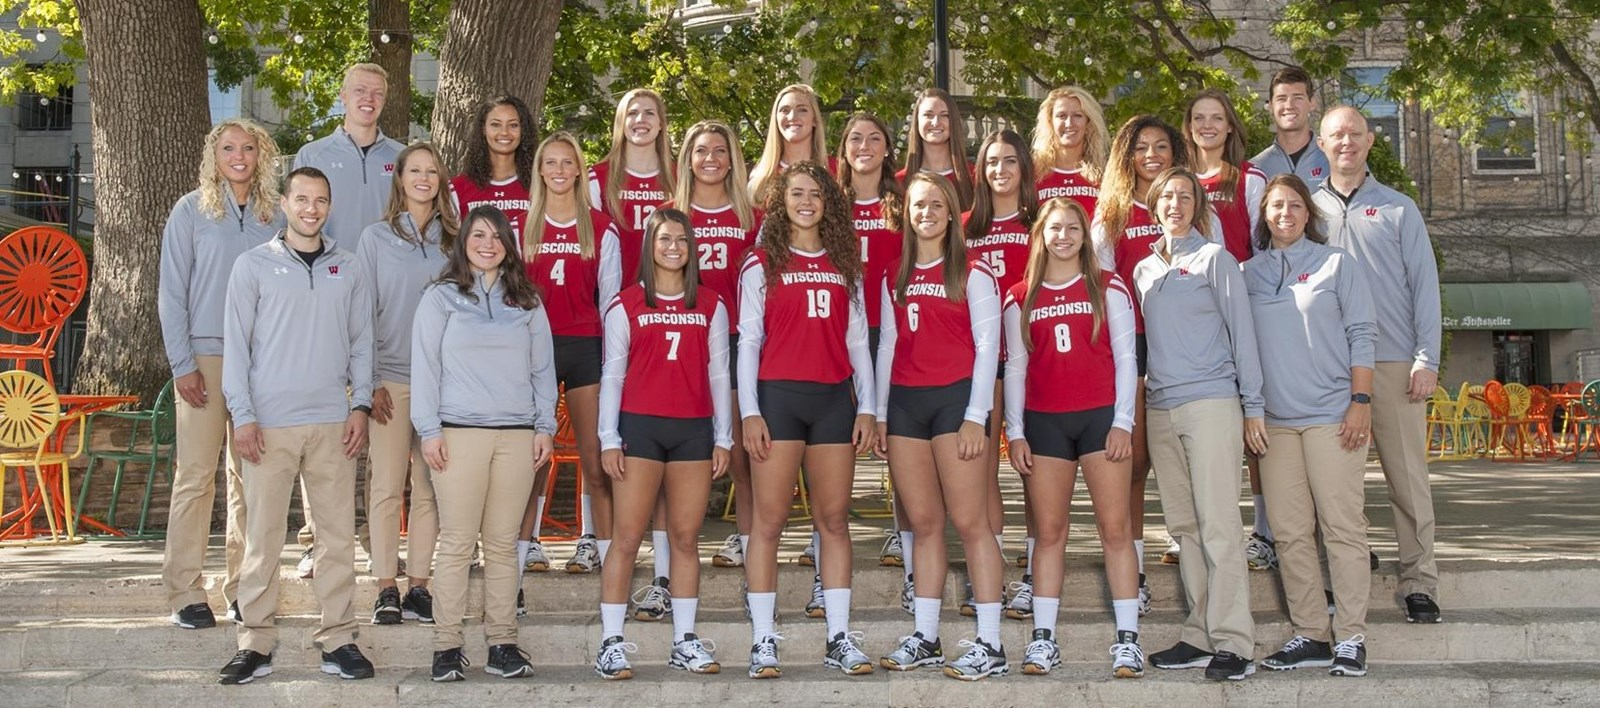 2016 Volleyball Roster Wisconsin Badgers